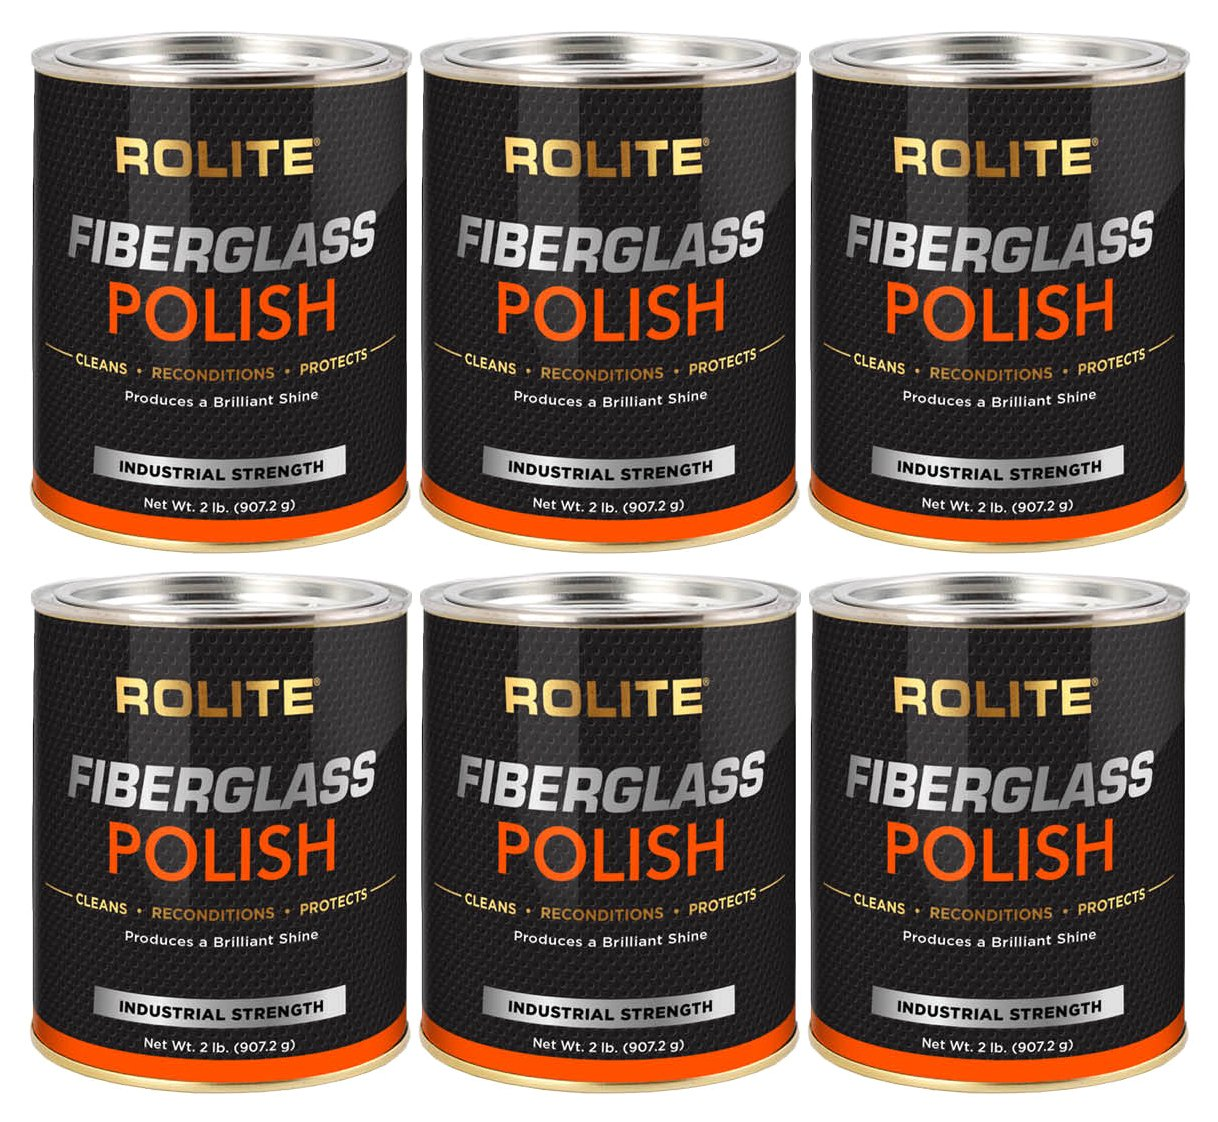 Rolite Fiberglass Polish (2lb) Removing Water Spots, Staining, Oxidation & Hairline Scratches from Boats, Clearcoat, Acrylic and Polycarbonate 6 Pack